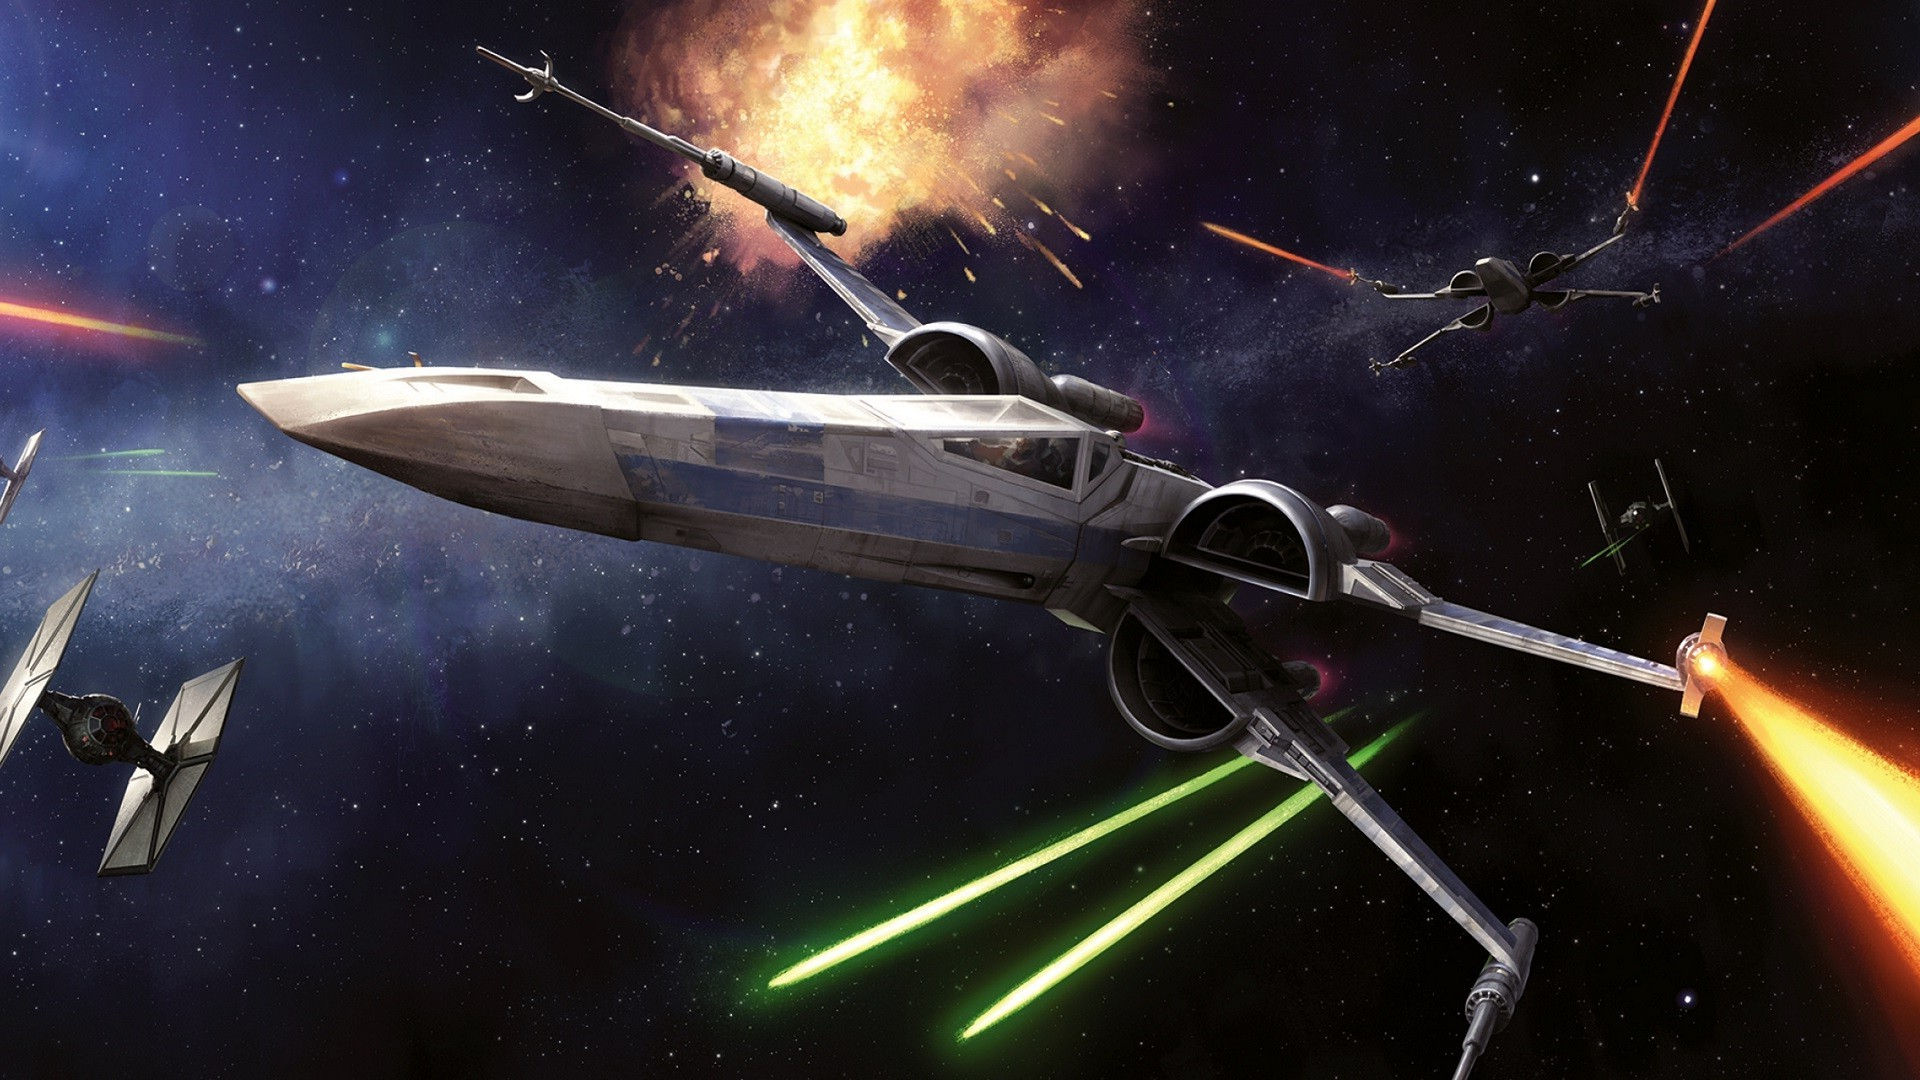 Star Wars Iphone Wallpaper X Wing The Galleries Of Hd